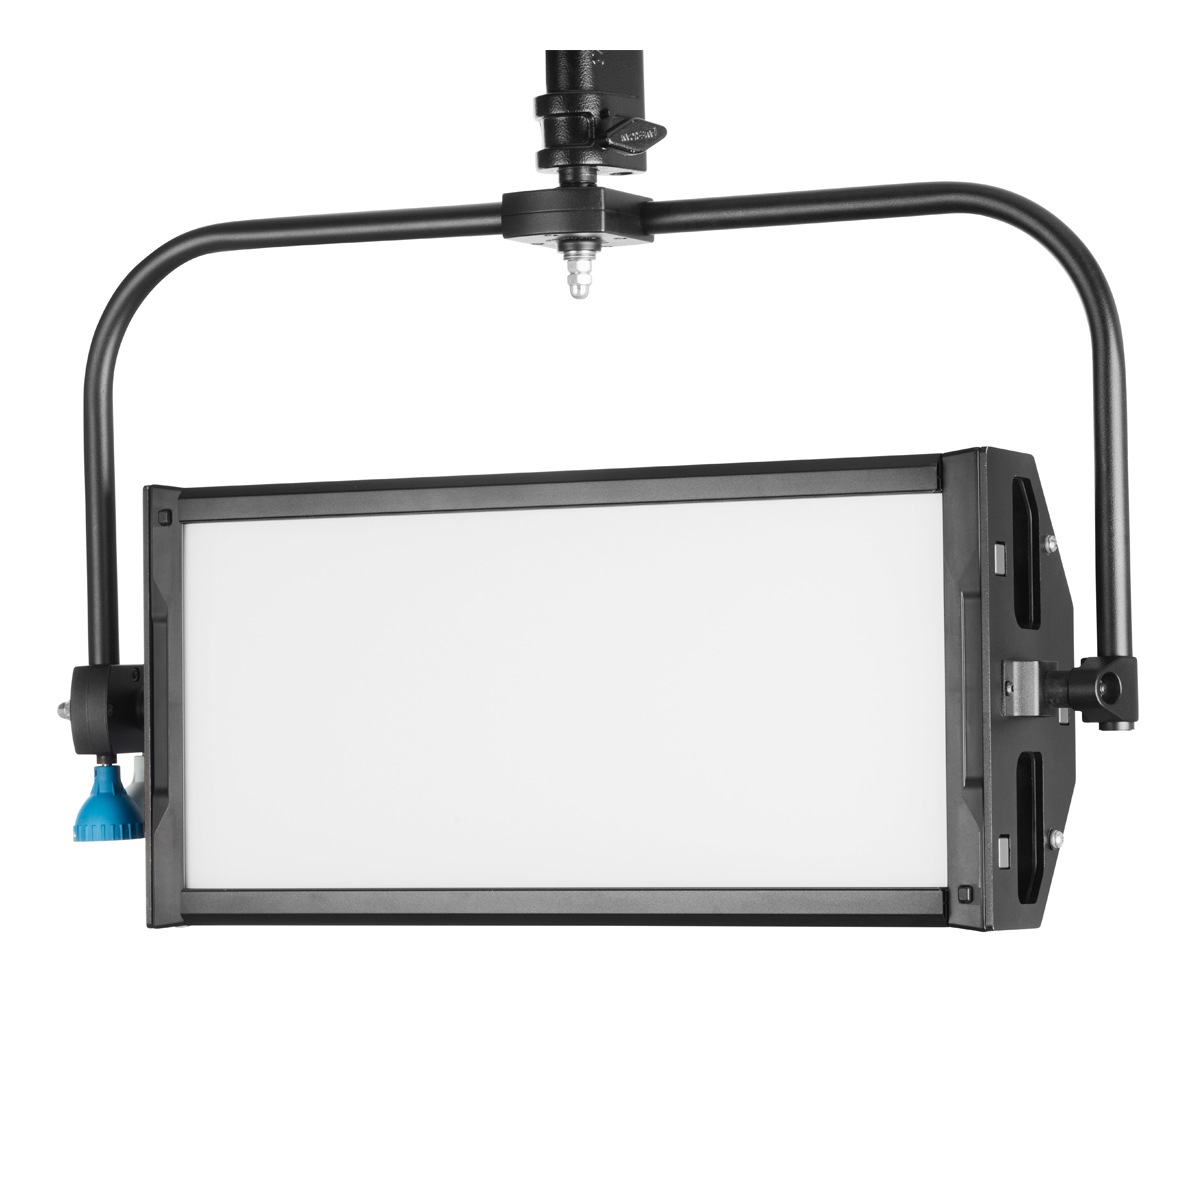 Gemini 2x1 Soft RGBWW LED Panel (Pole-Operated Yoke, Bare Ends)